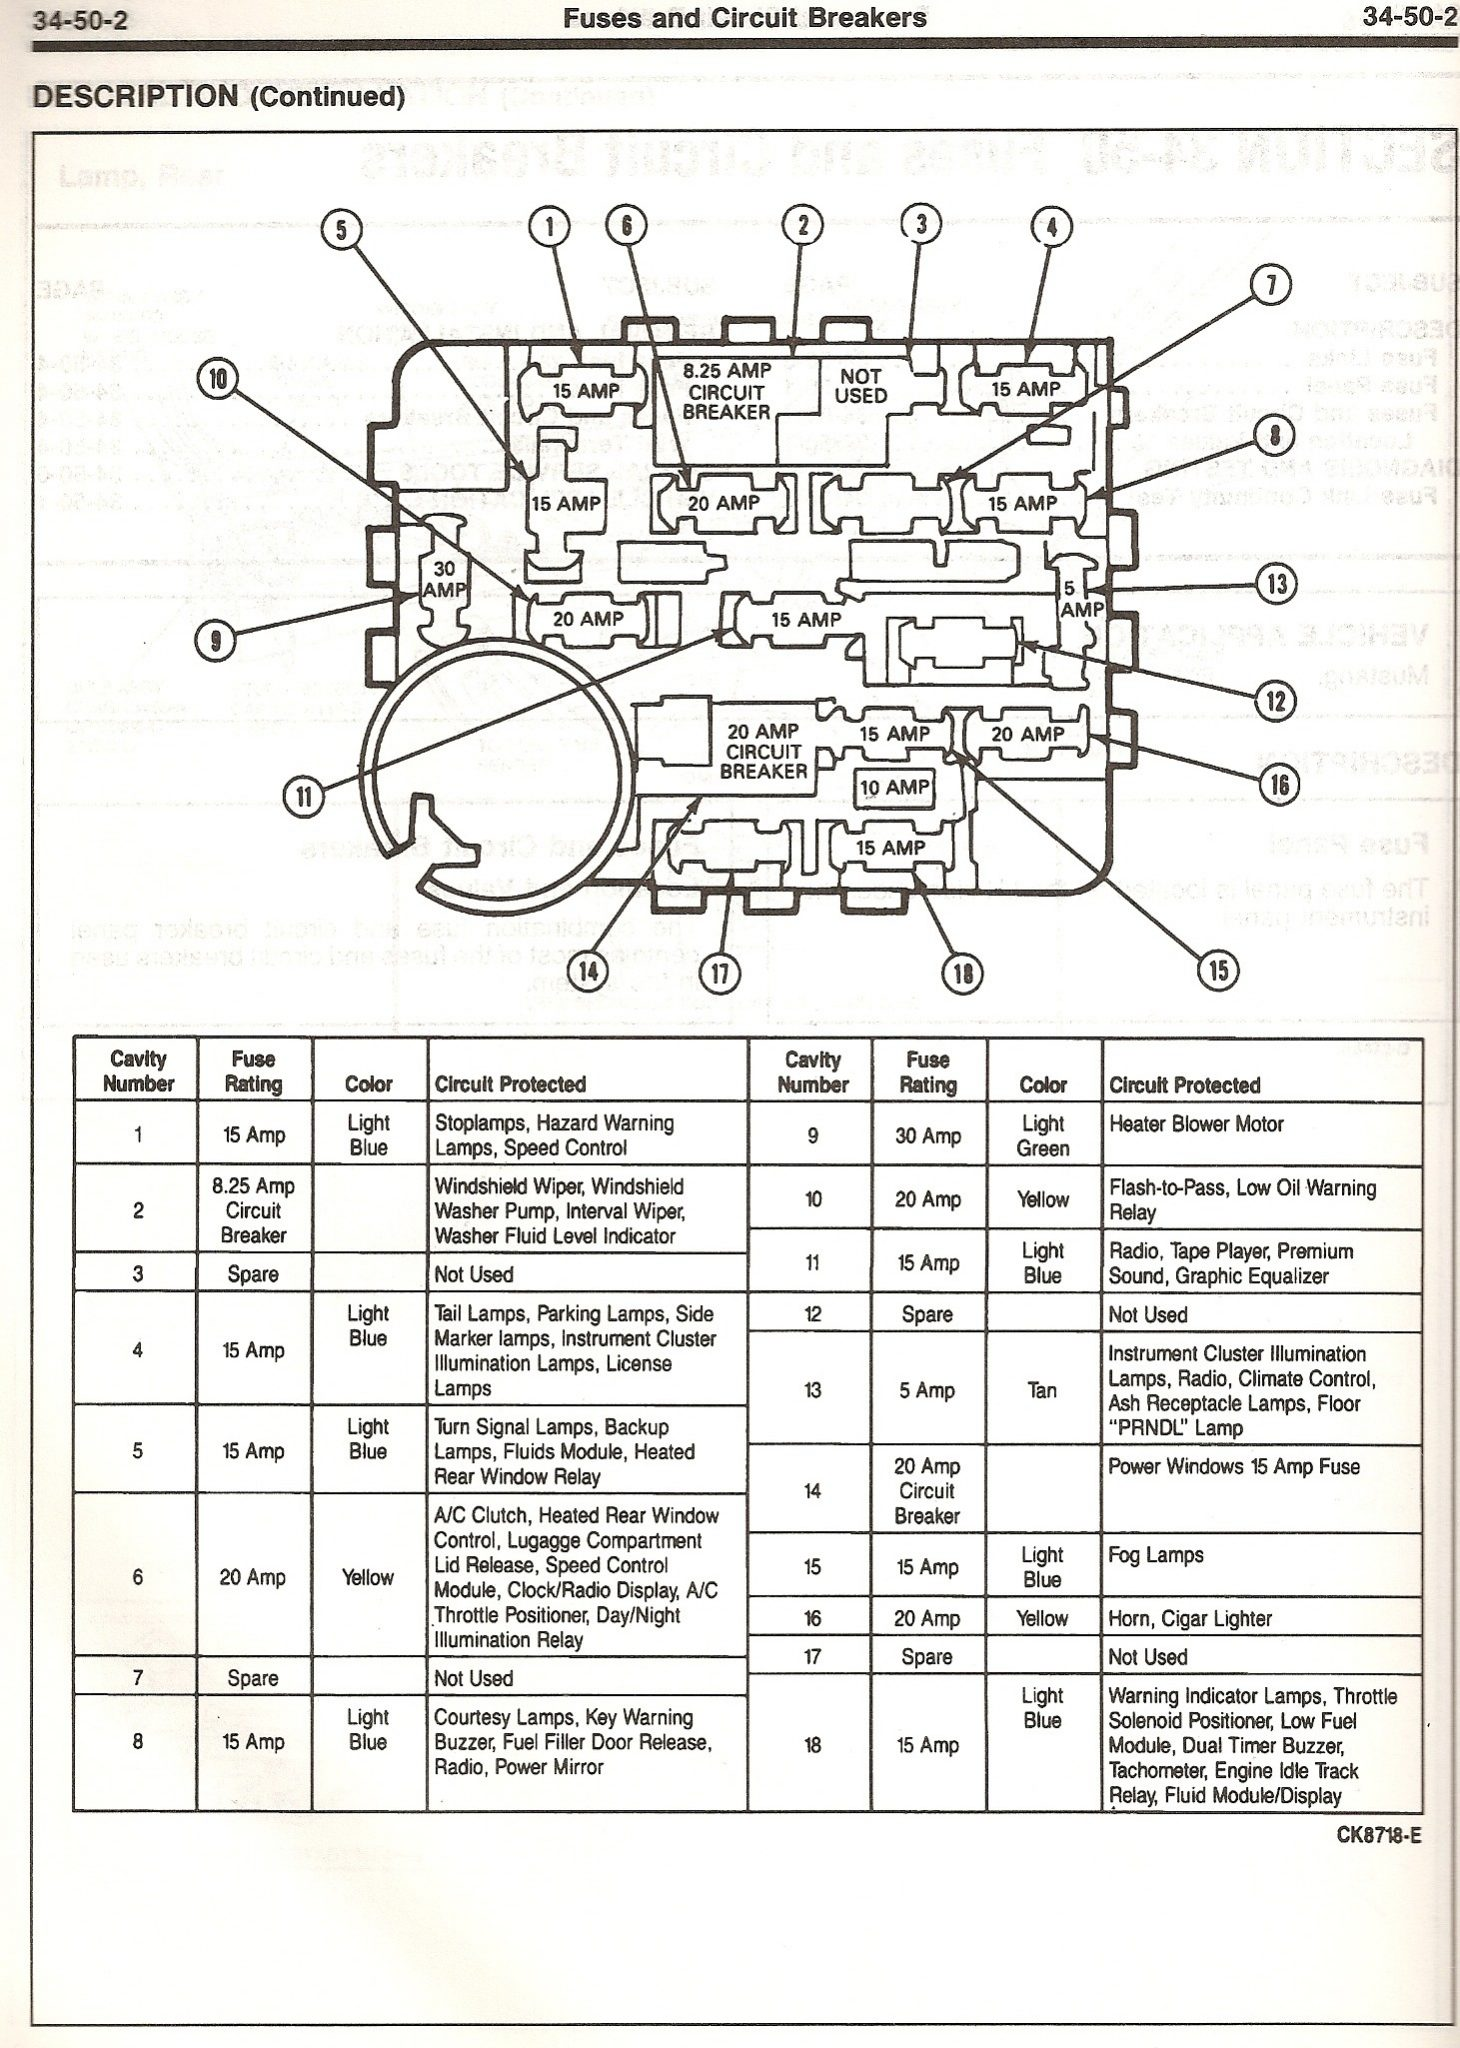 1990 Camaro Fuse Panel Diagram Electrical Wiring Diagrams Box Ford Mustang Cover Diy Enthusiasts U2022 2007 F250